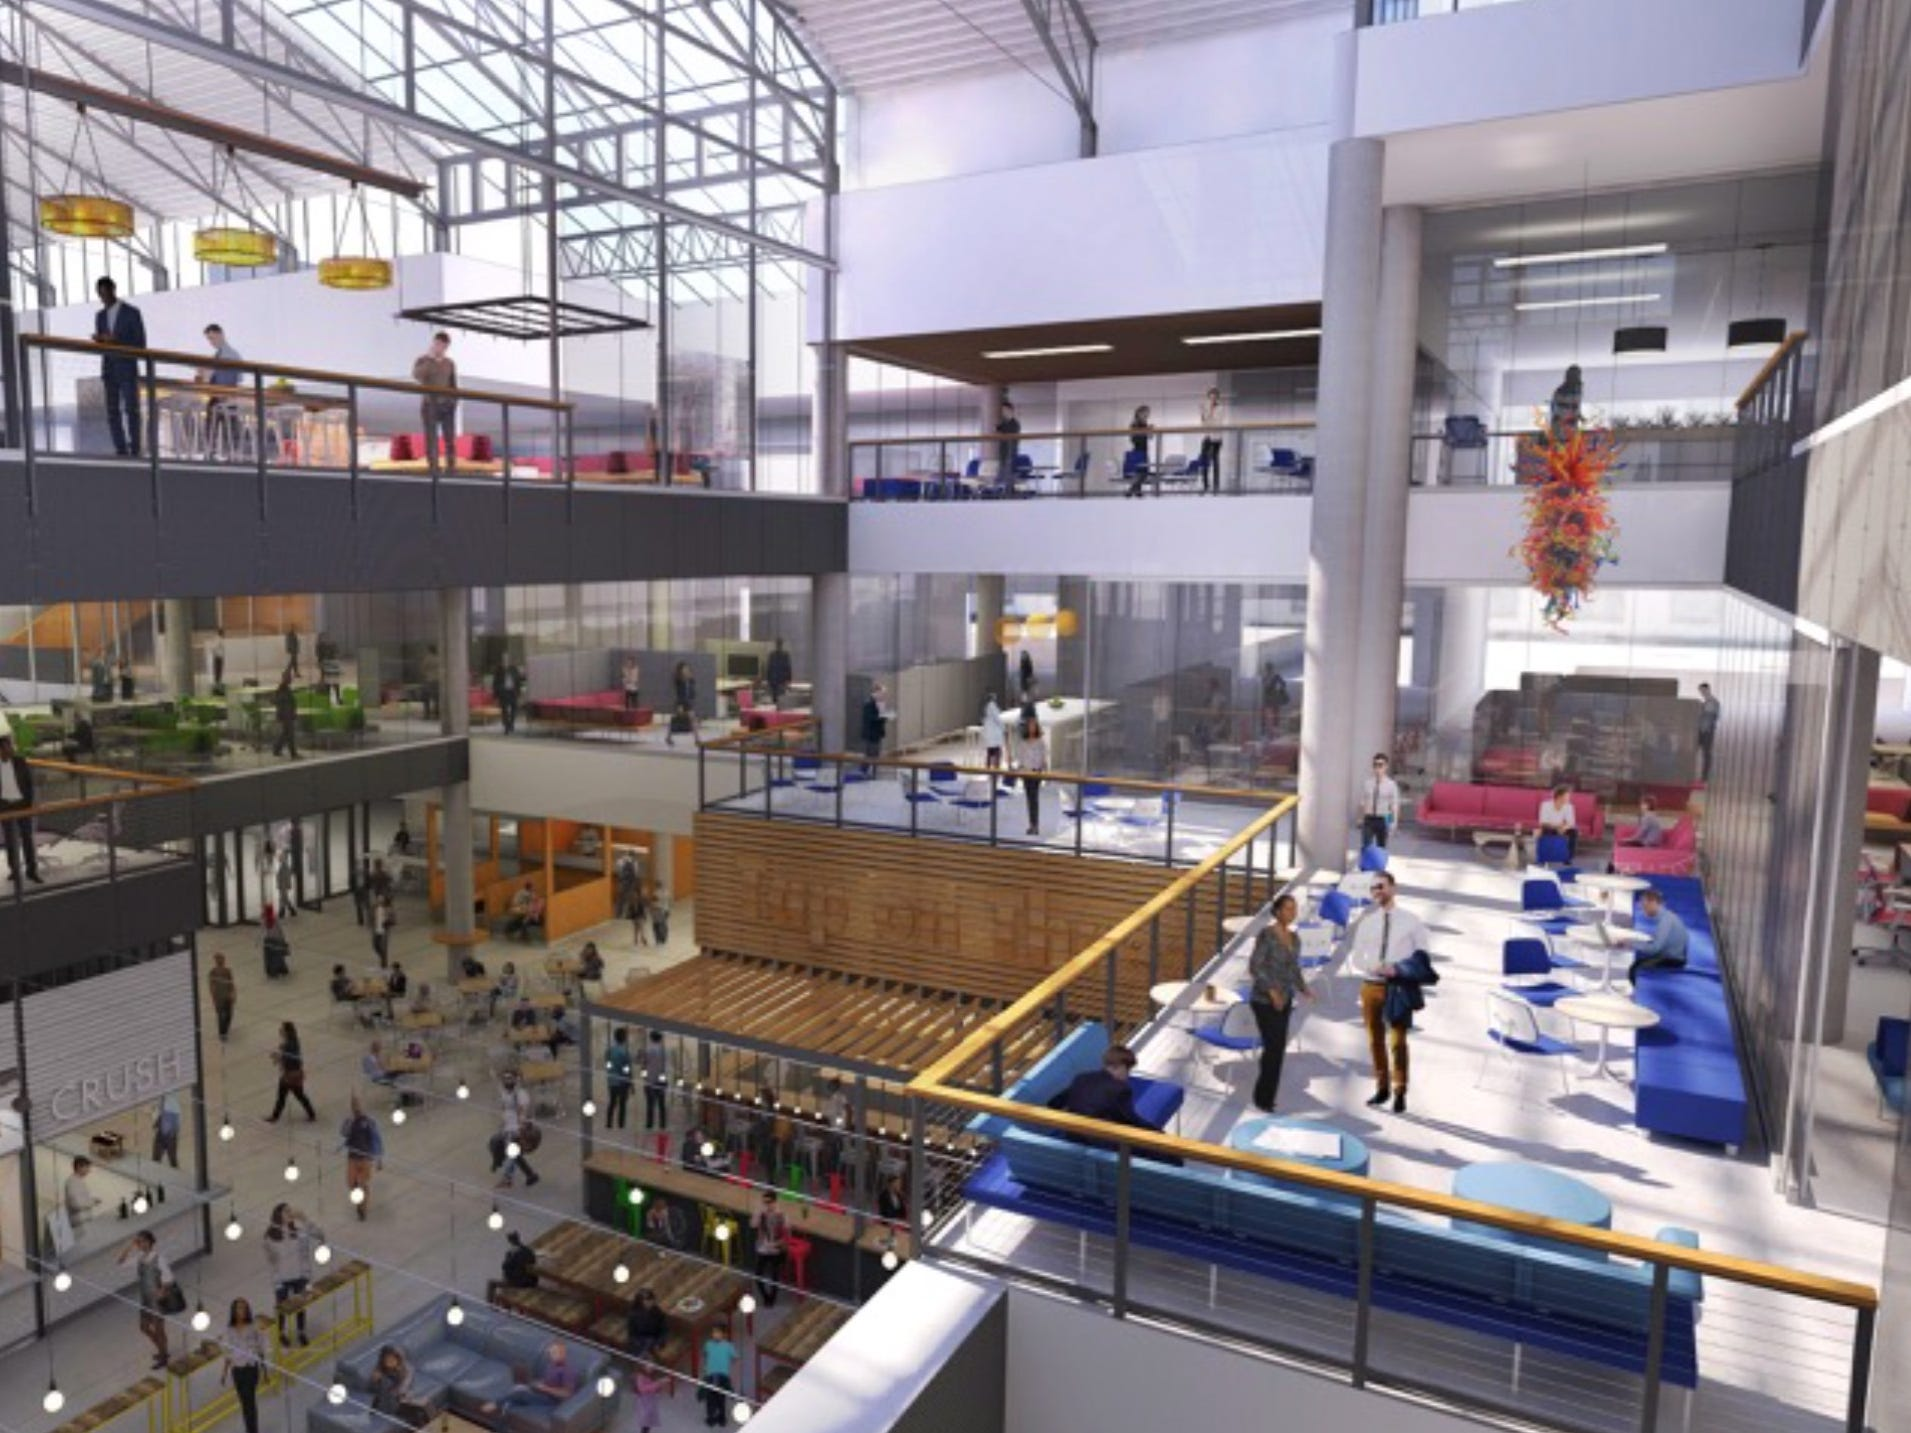 The plan is to convert the Grand Avenue mall into a mix of offices, restaurants, a grocery store and other new uses for a dramatically different look for the property, especially its center court atrium.